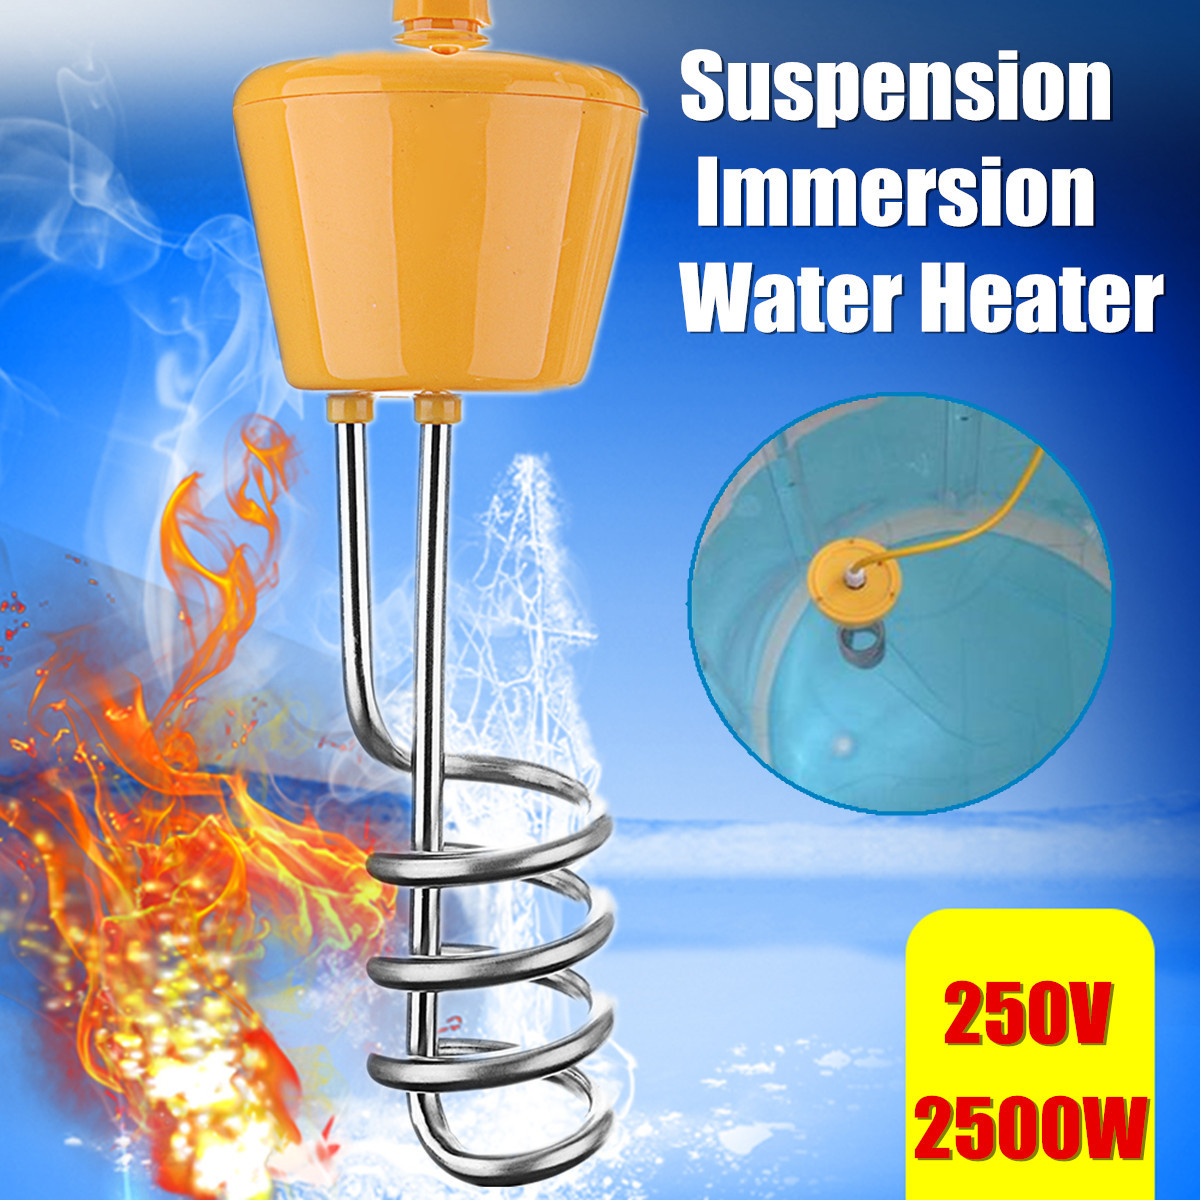 2500W 220V Floating Water Heater Element for Bathtub Swimming Pool with Thermometer Rust-proof Corrosion Resistant Safety2500W 220V Floating Water Heater Element for Bathtub Swimming Pool with Thermometer Rust-proof Corrosion Resistant Safety